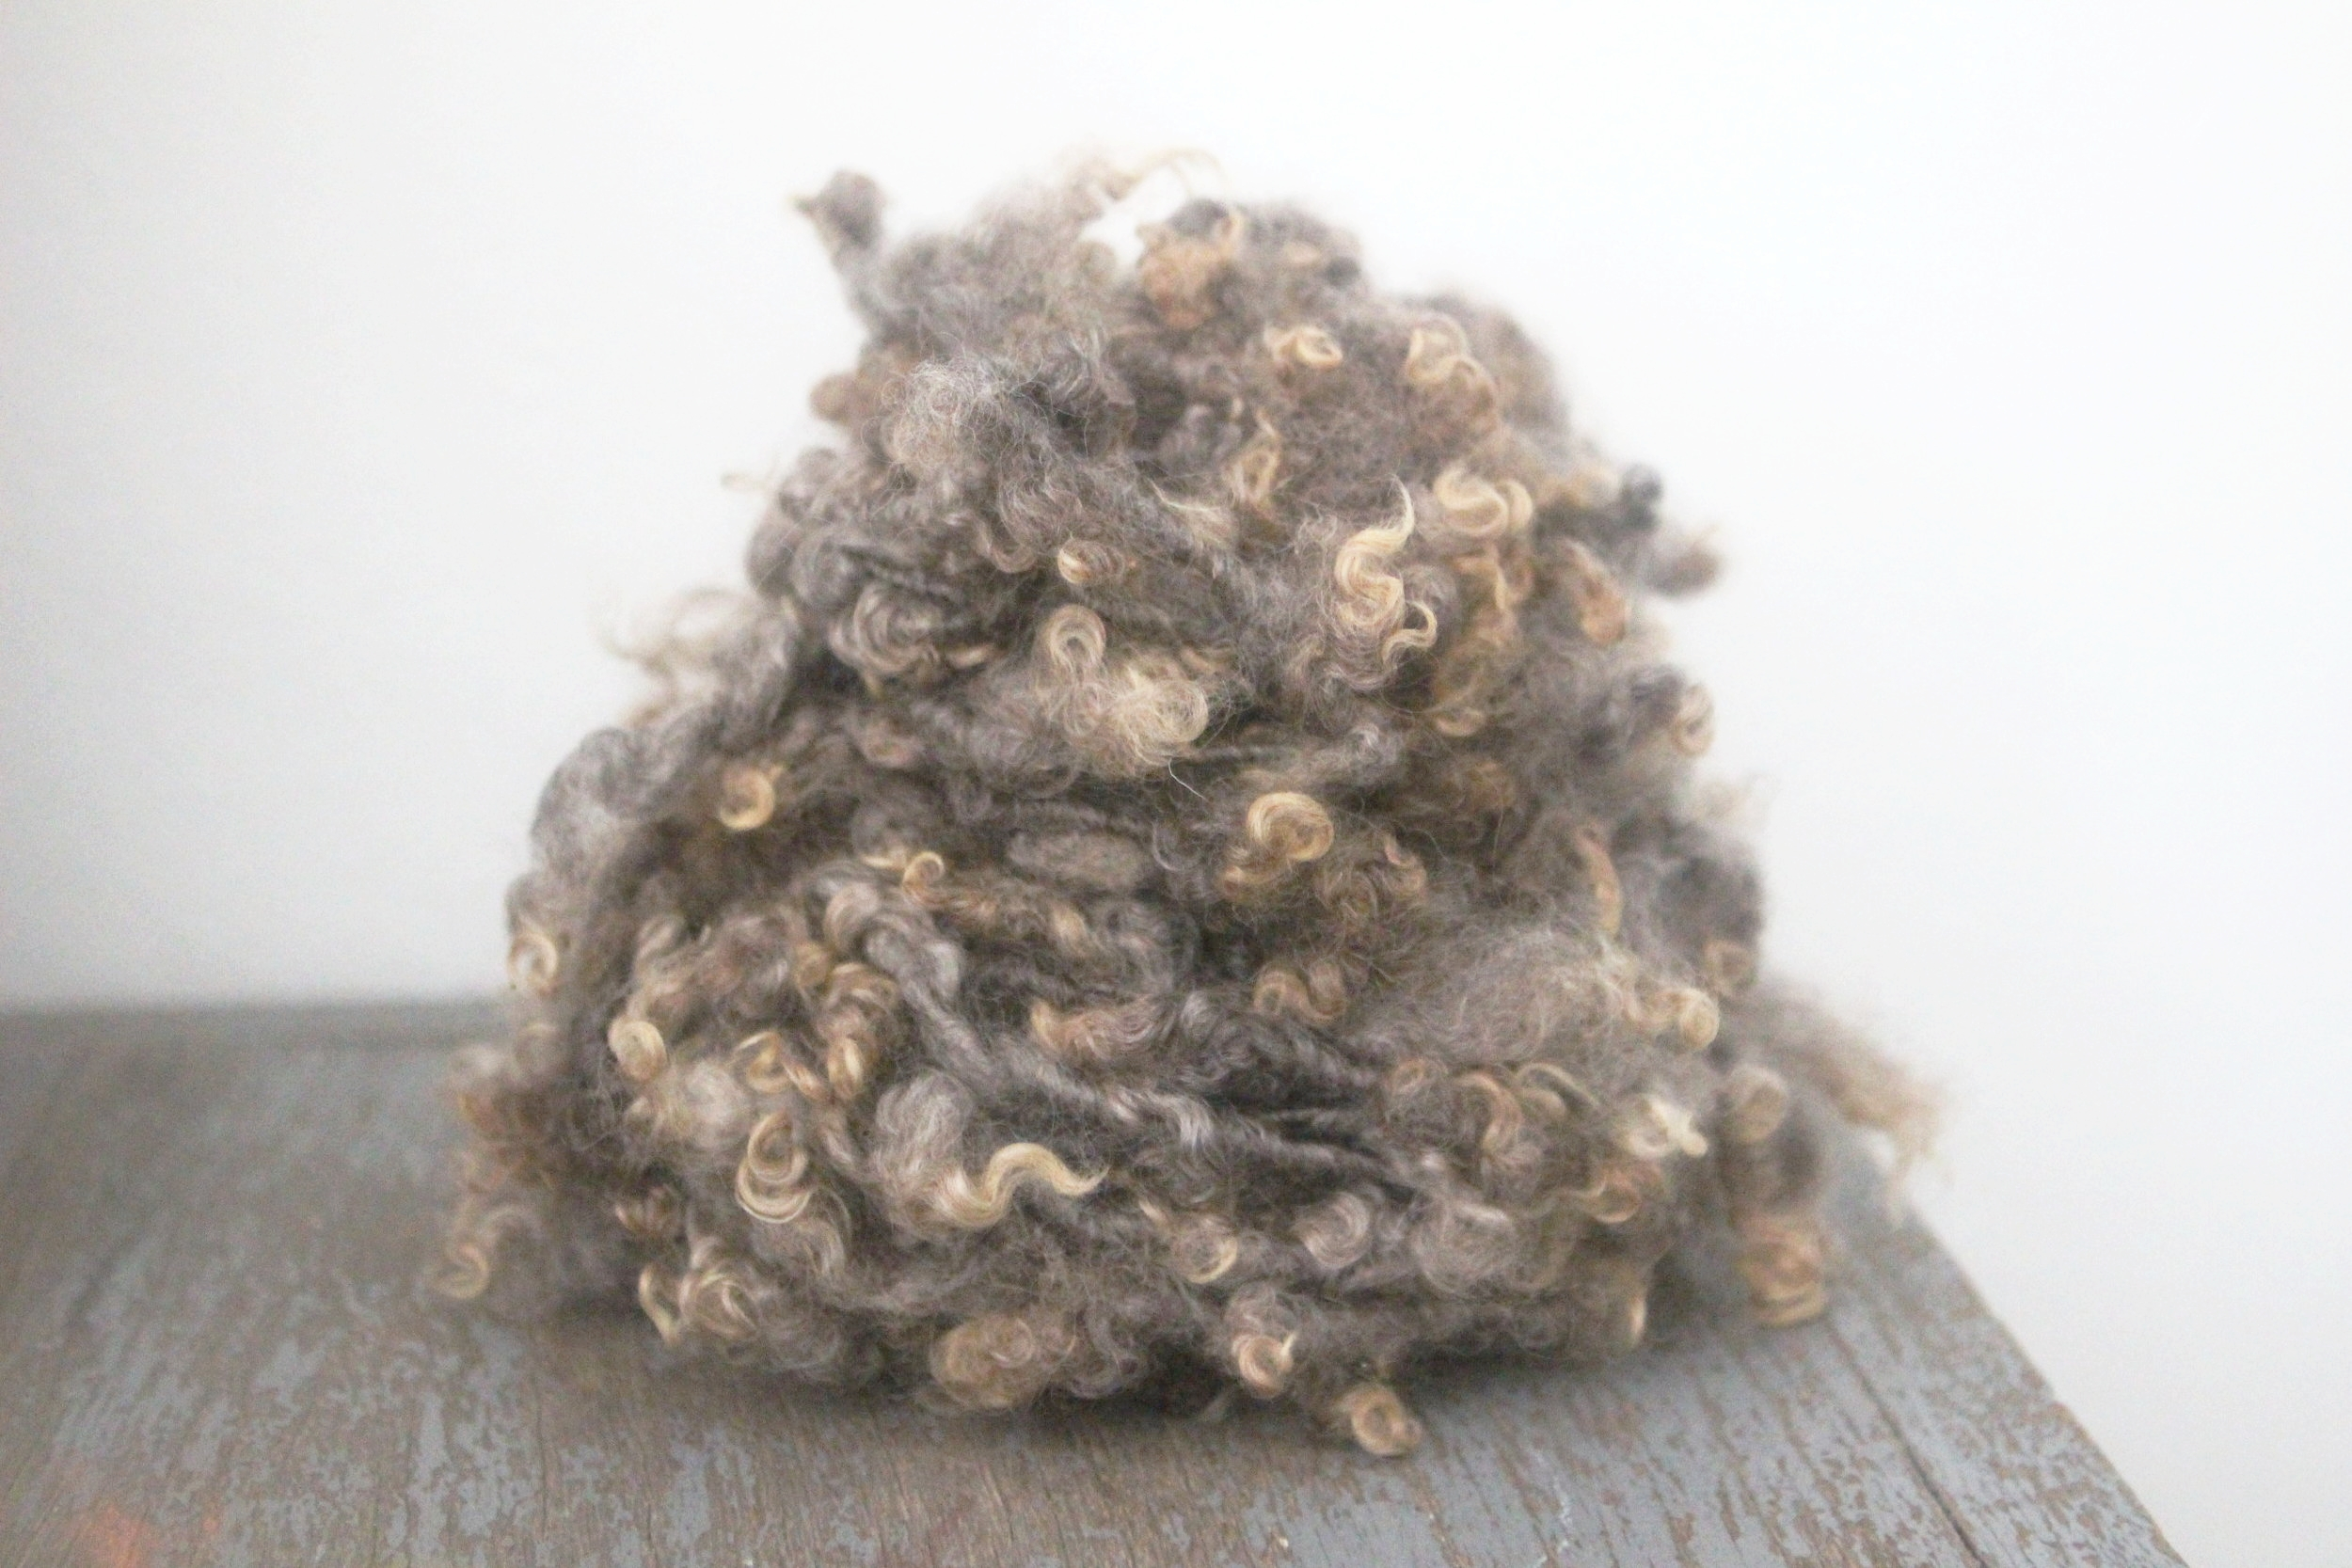 Purchase Warrick's Lockspun Yarn by clicking on the button below. Supplies are Limited.